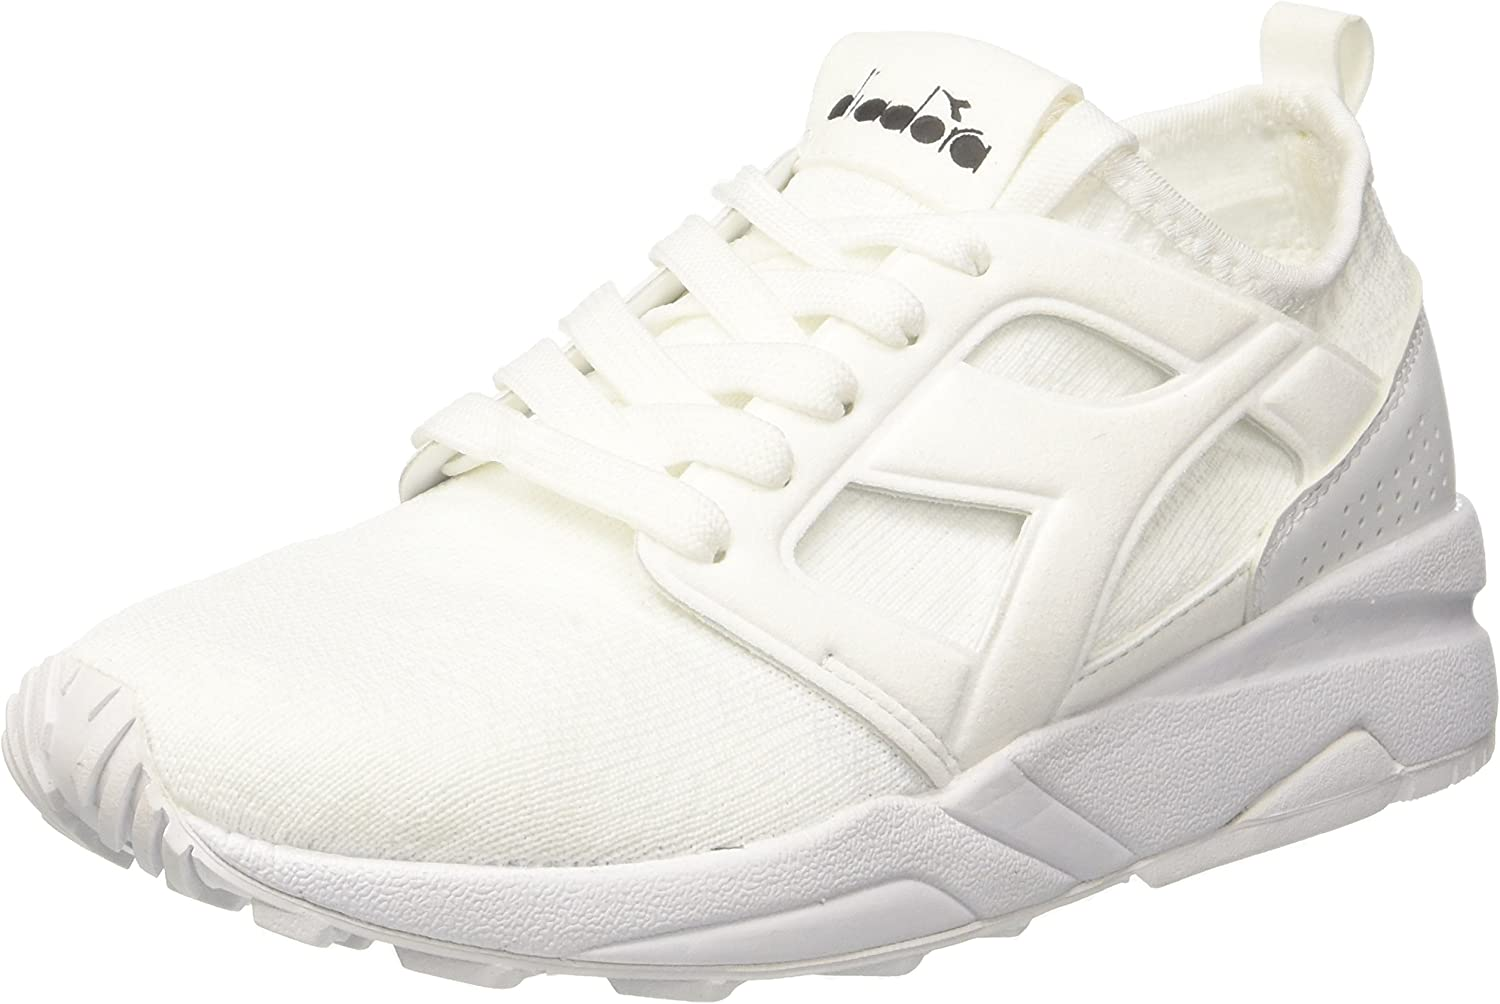 Diadora - Sport shoes EVO AEON WEAVE for man and woman